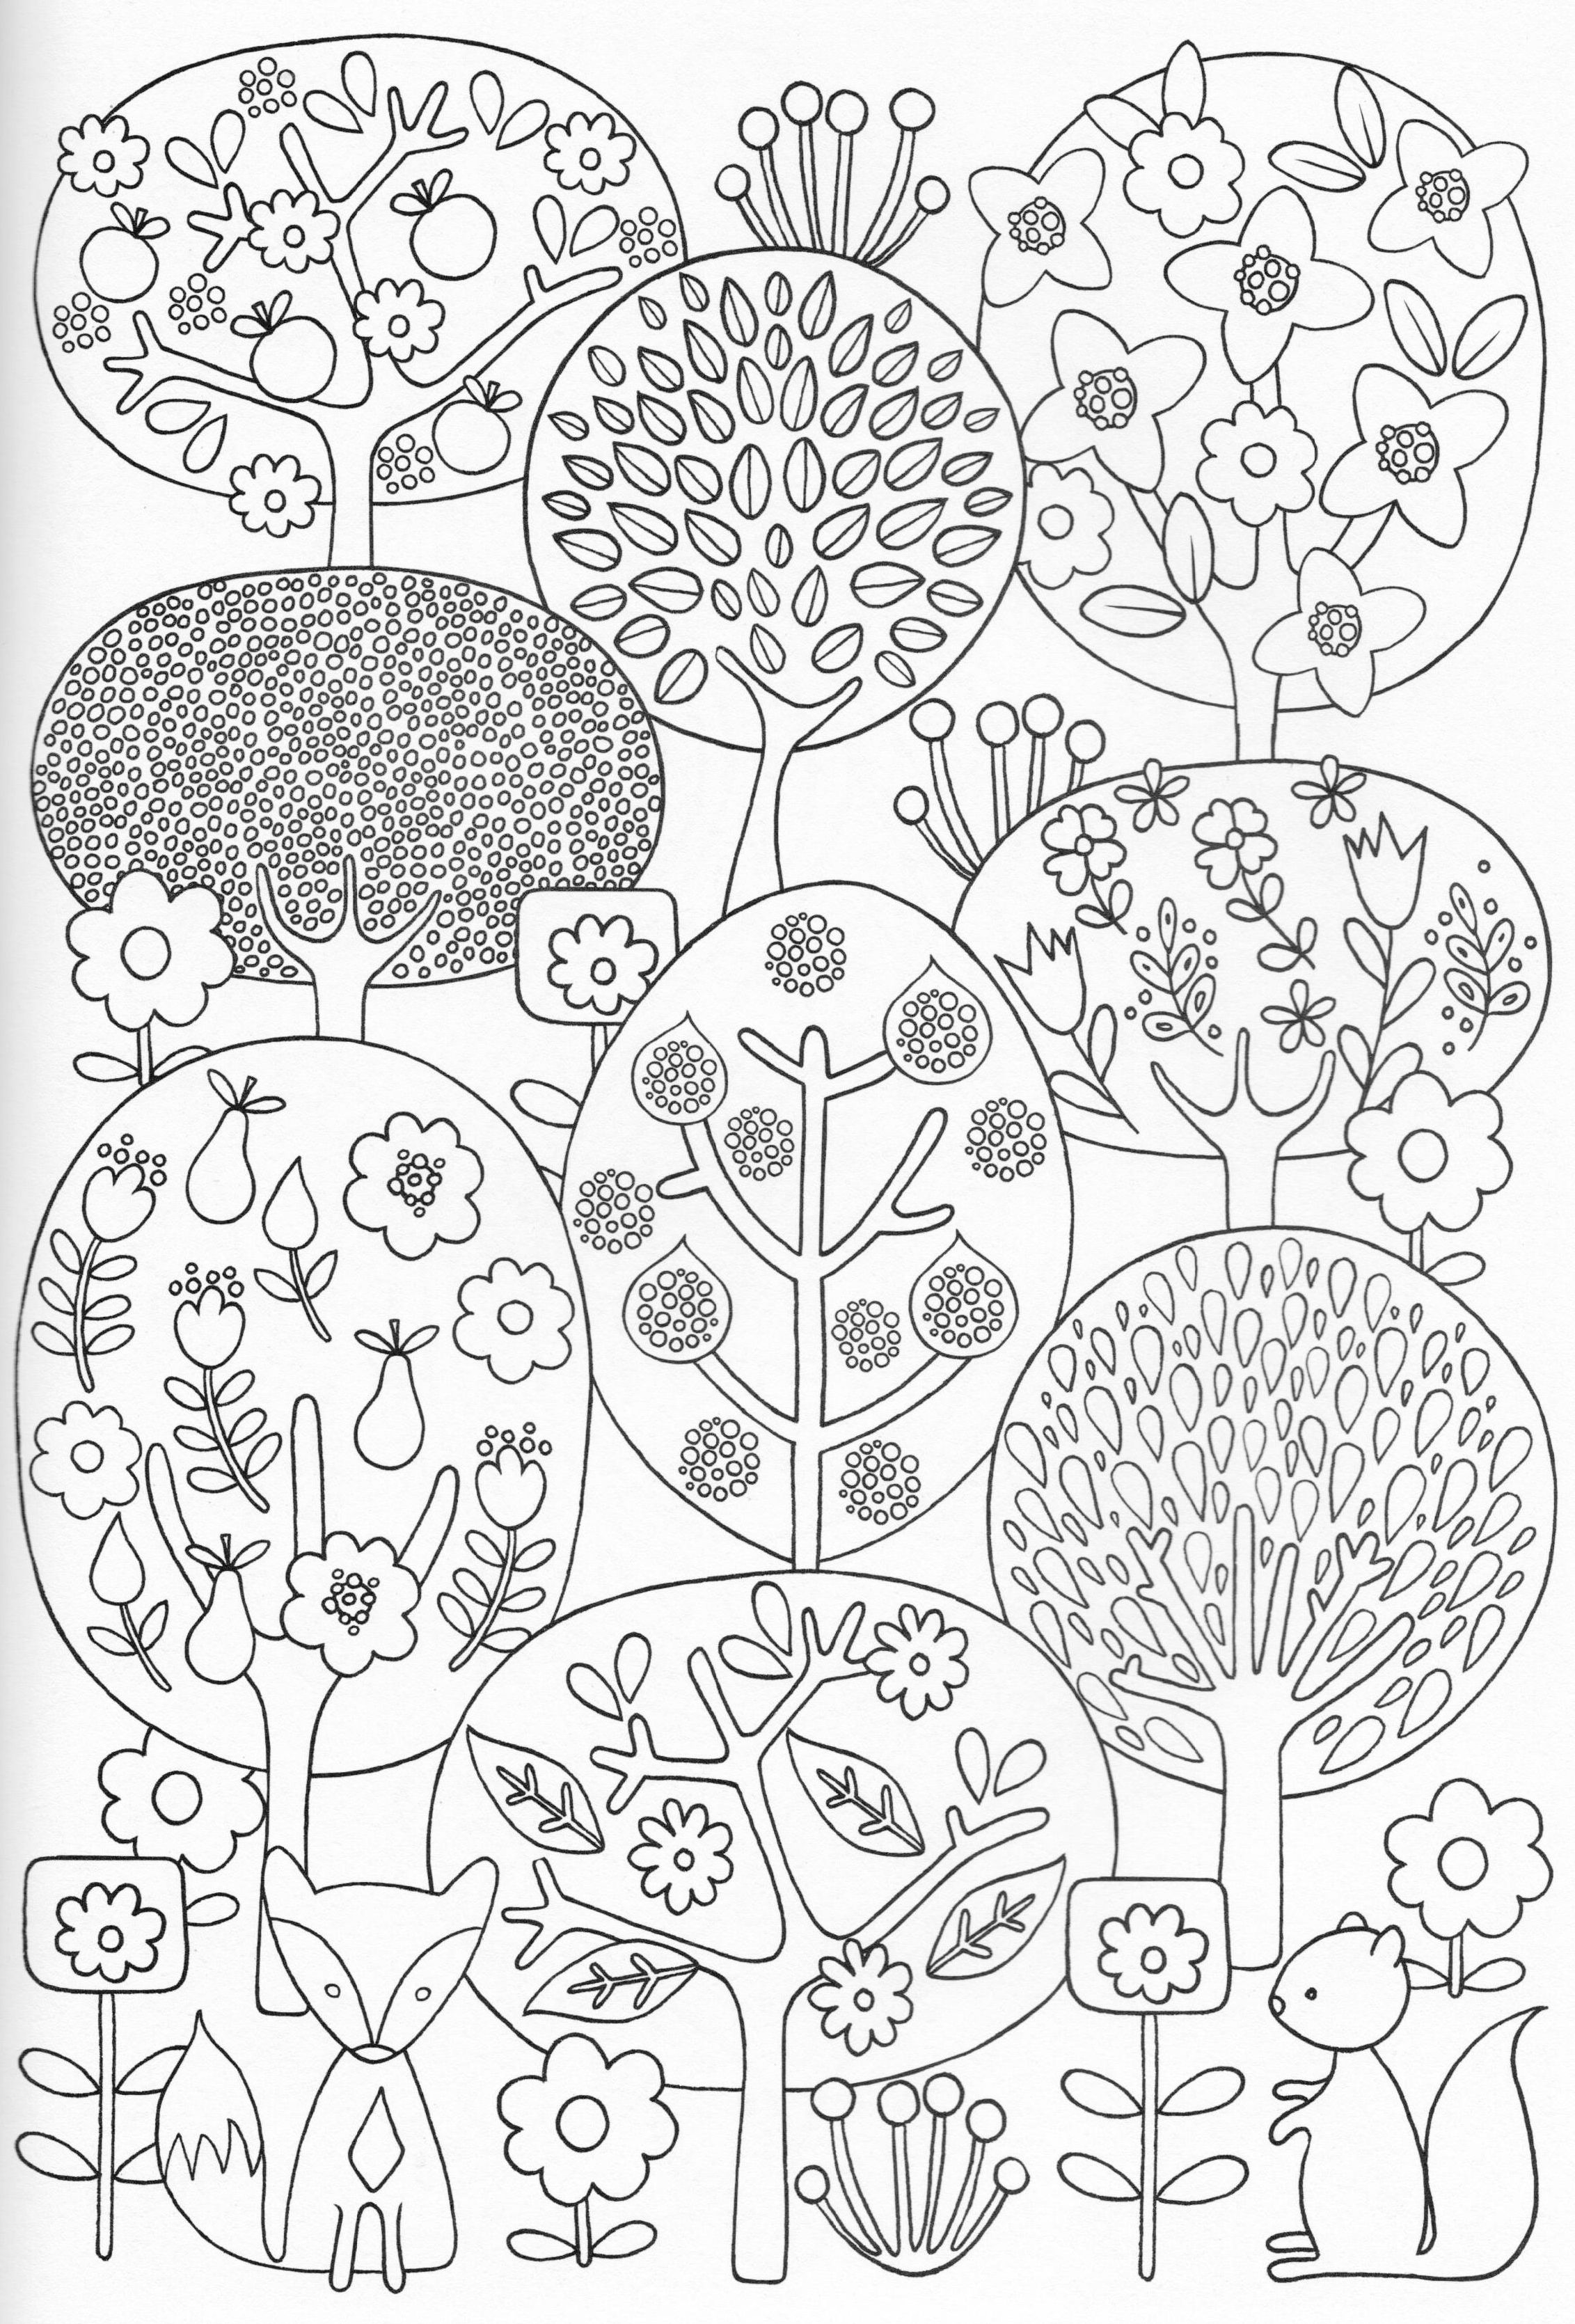 Colorear Cuadros Famosos The Best Free Para Coloring Page Images Download From 1346 Free